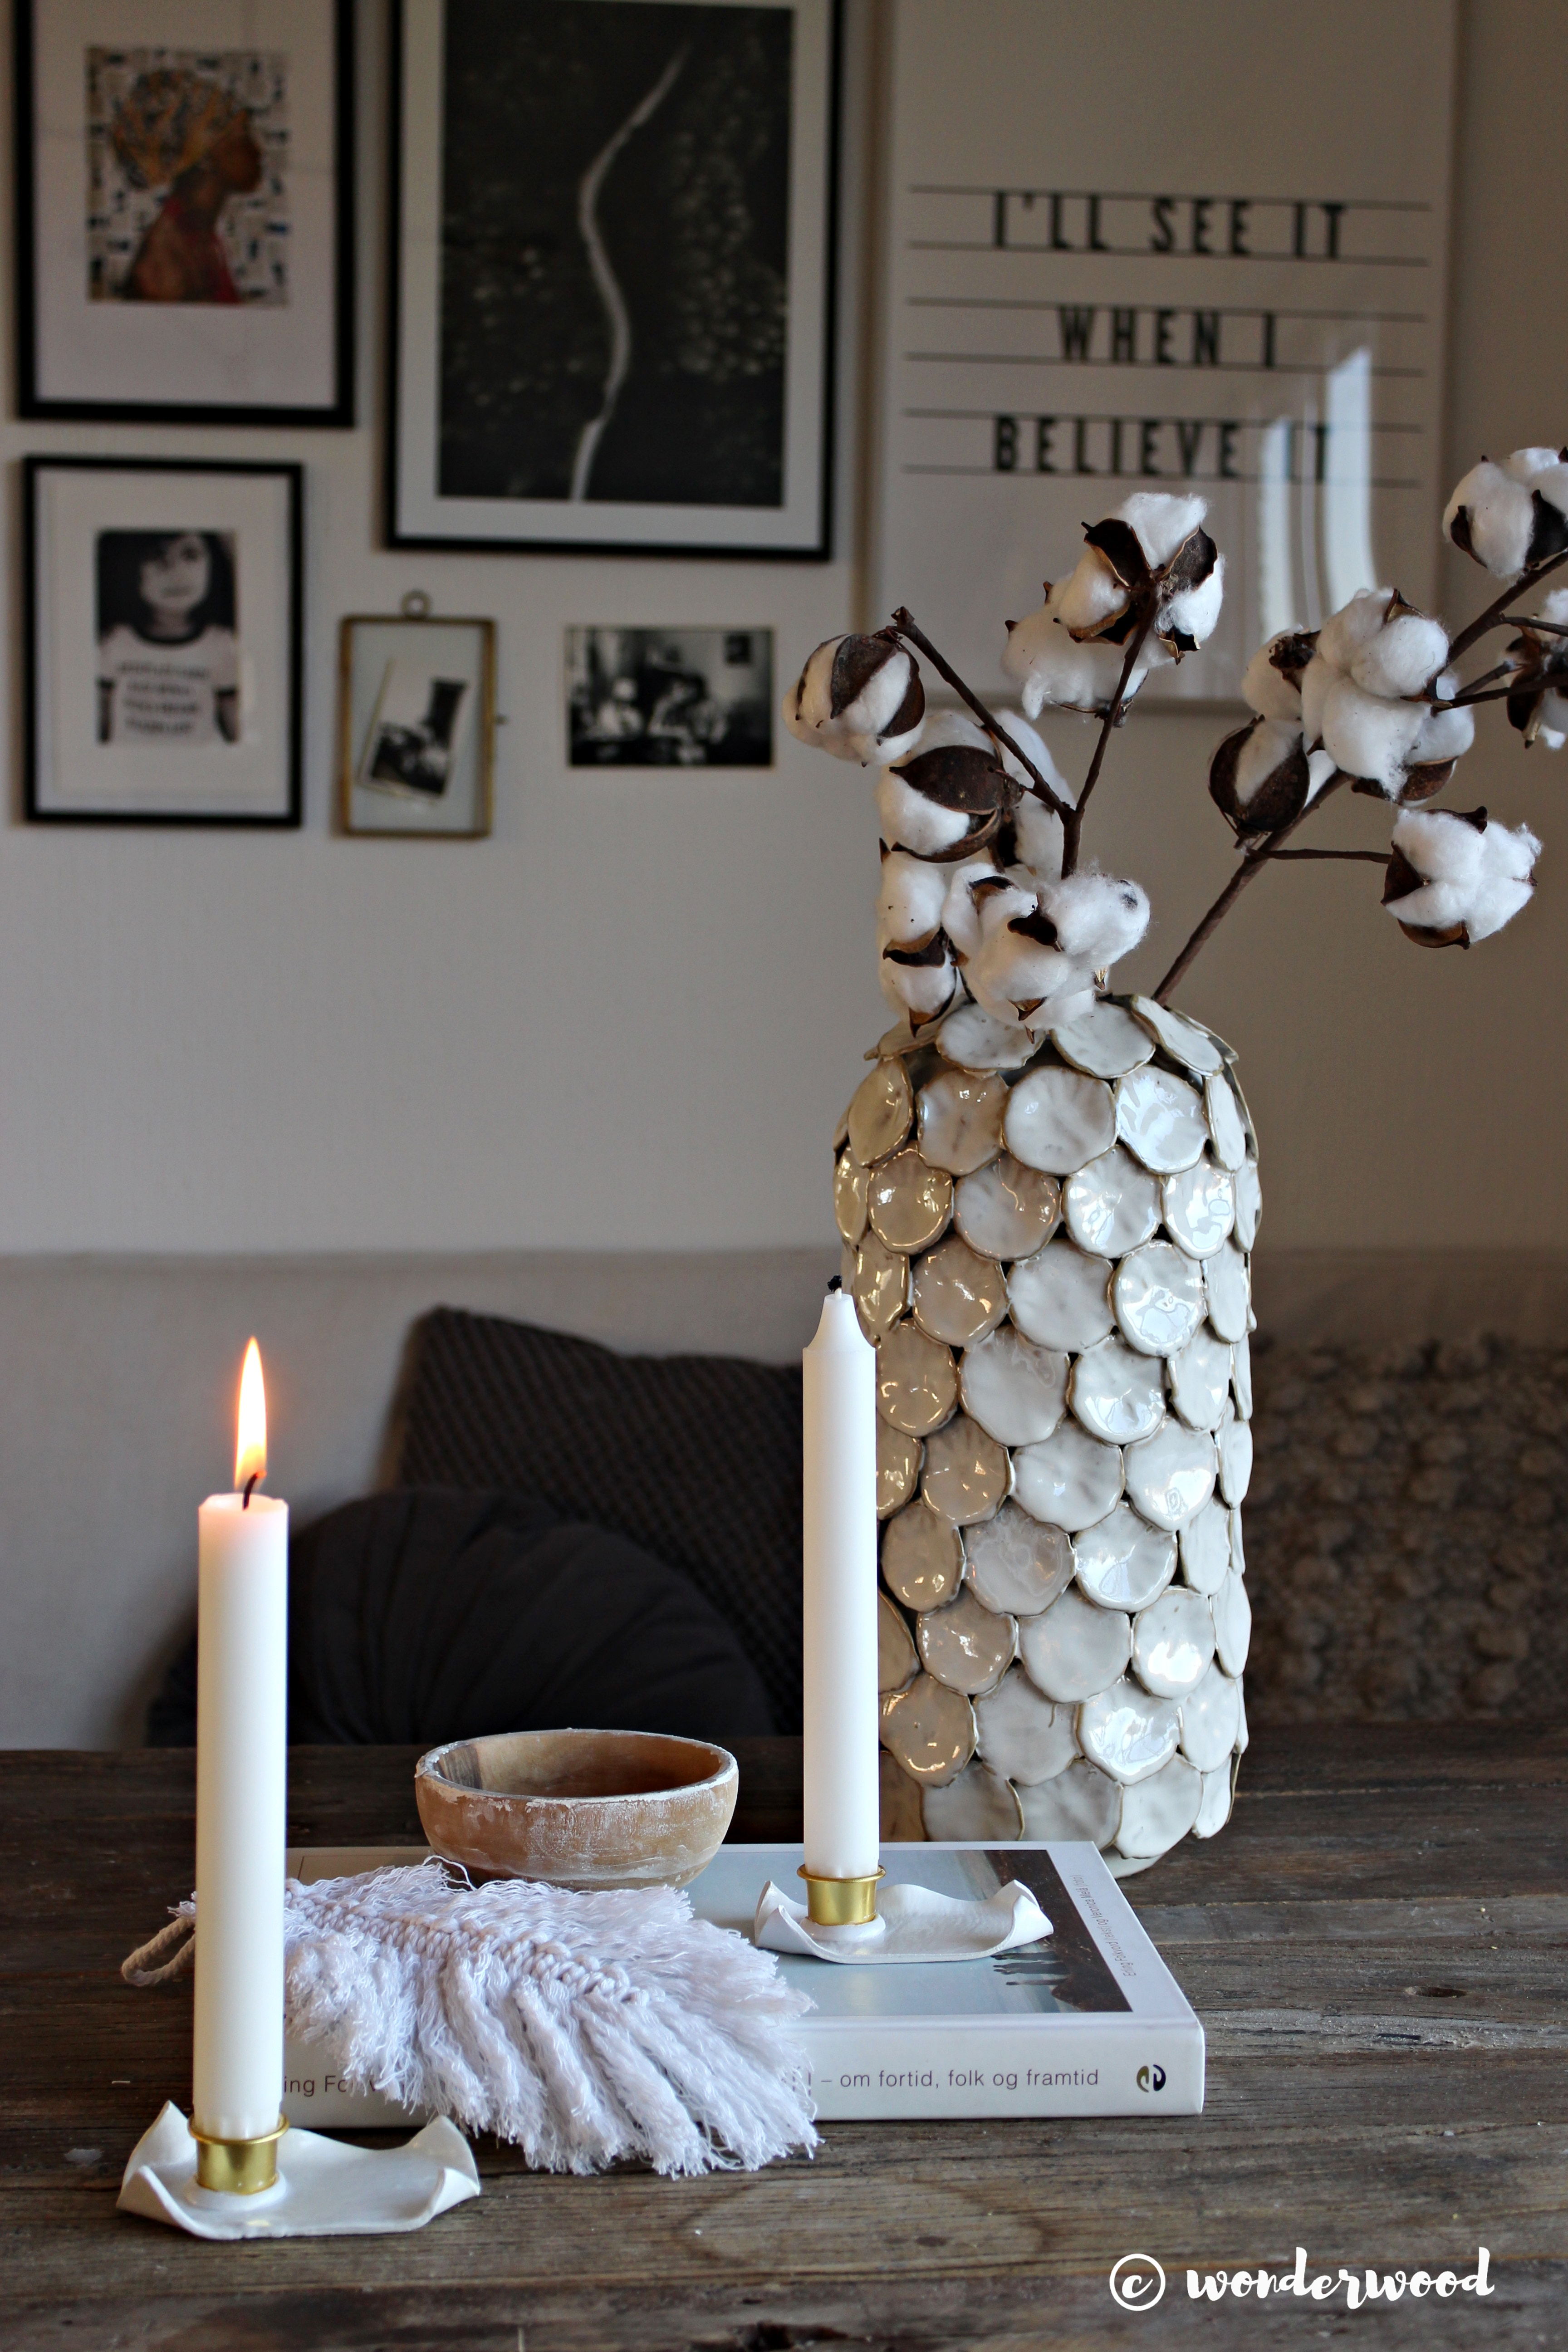 diy lysestake av leire // diy clay candle holder